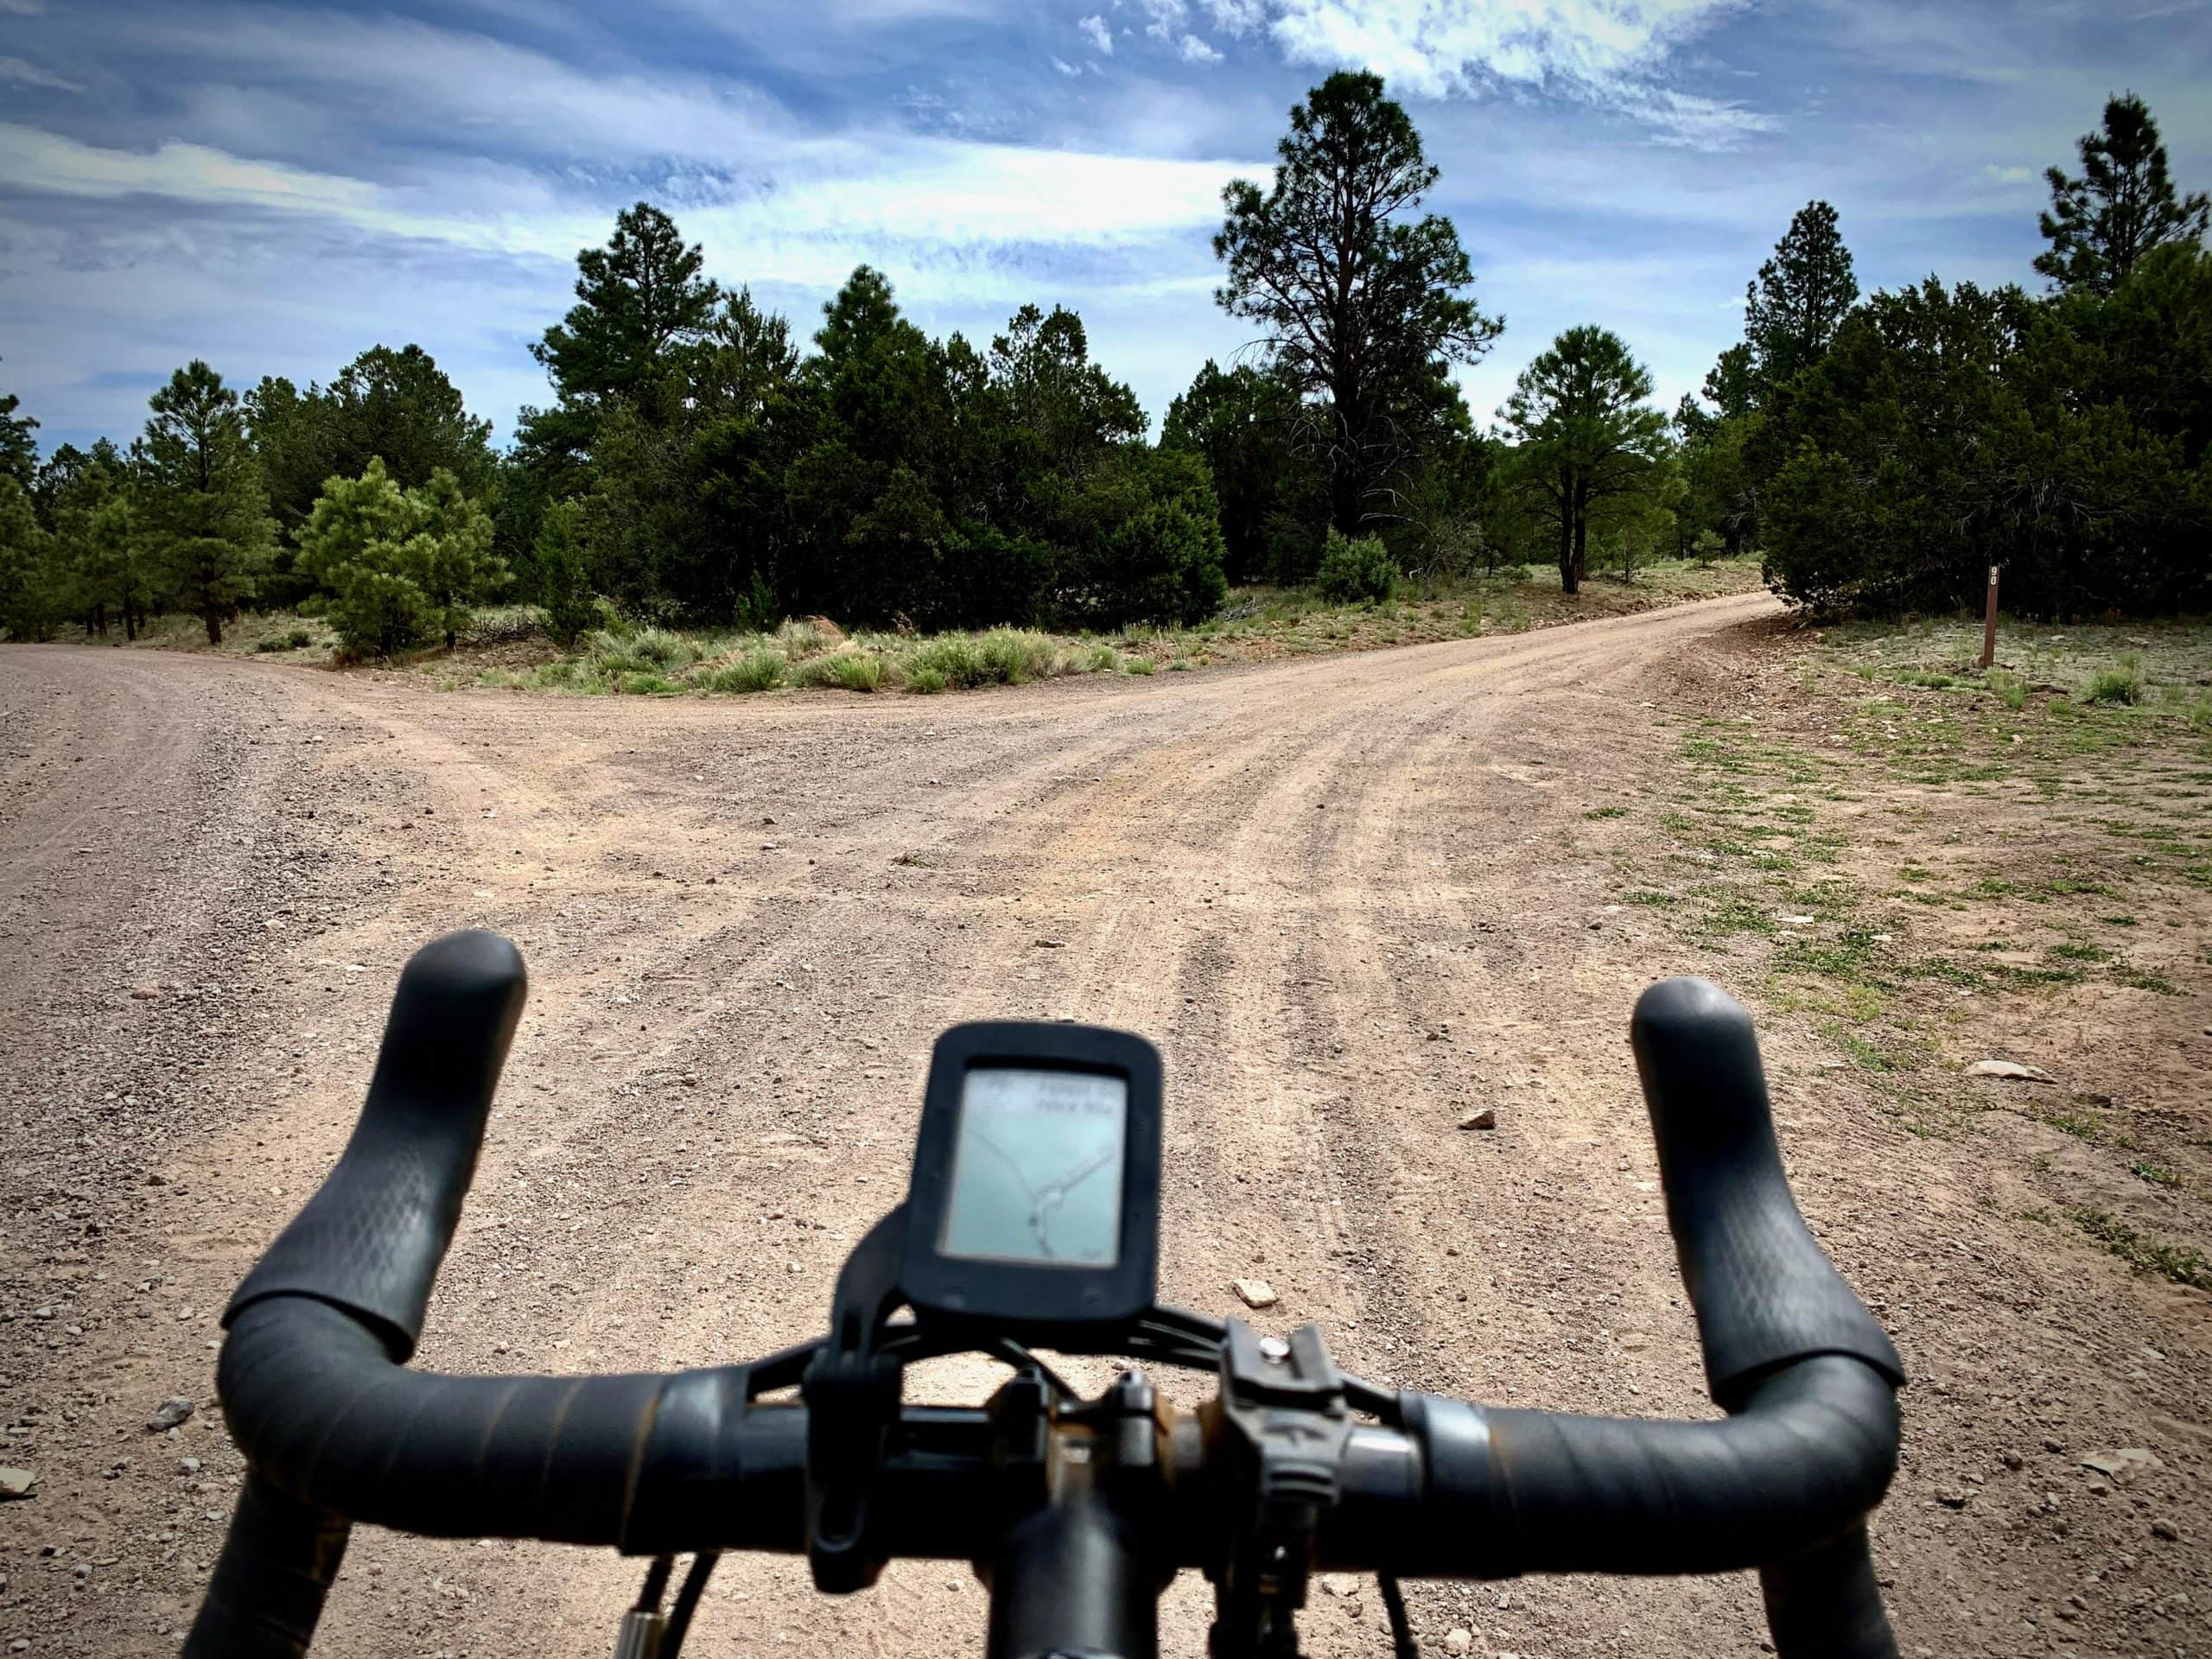 Gravel bike rider turning right onto Old 90 Forest Service road near Kendrick Mountain Wilderness.